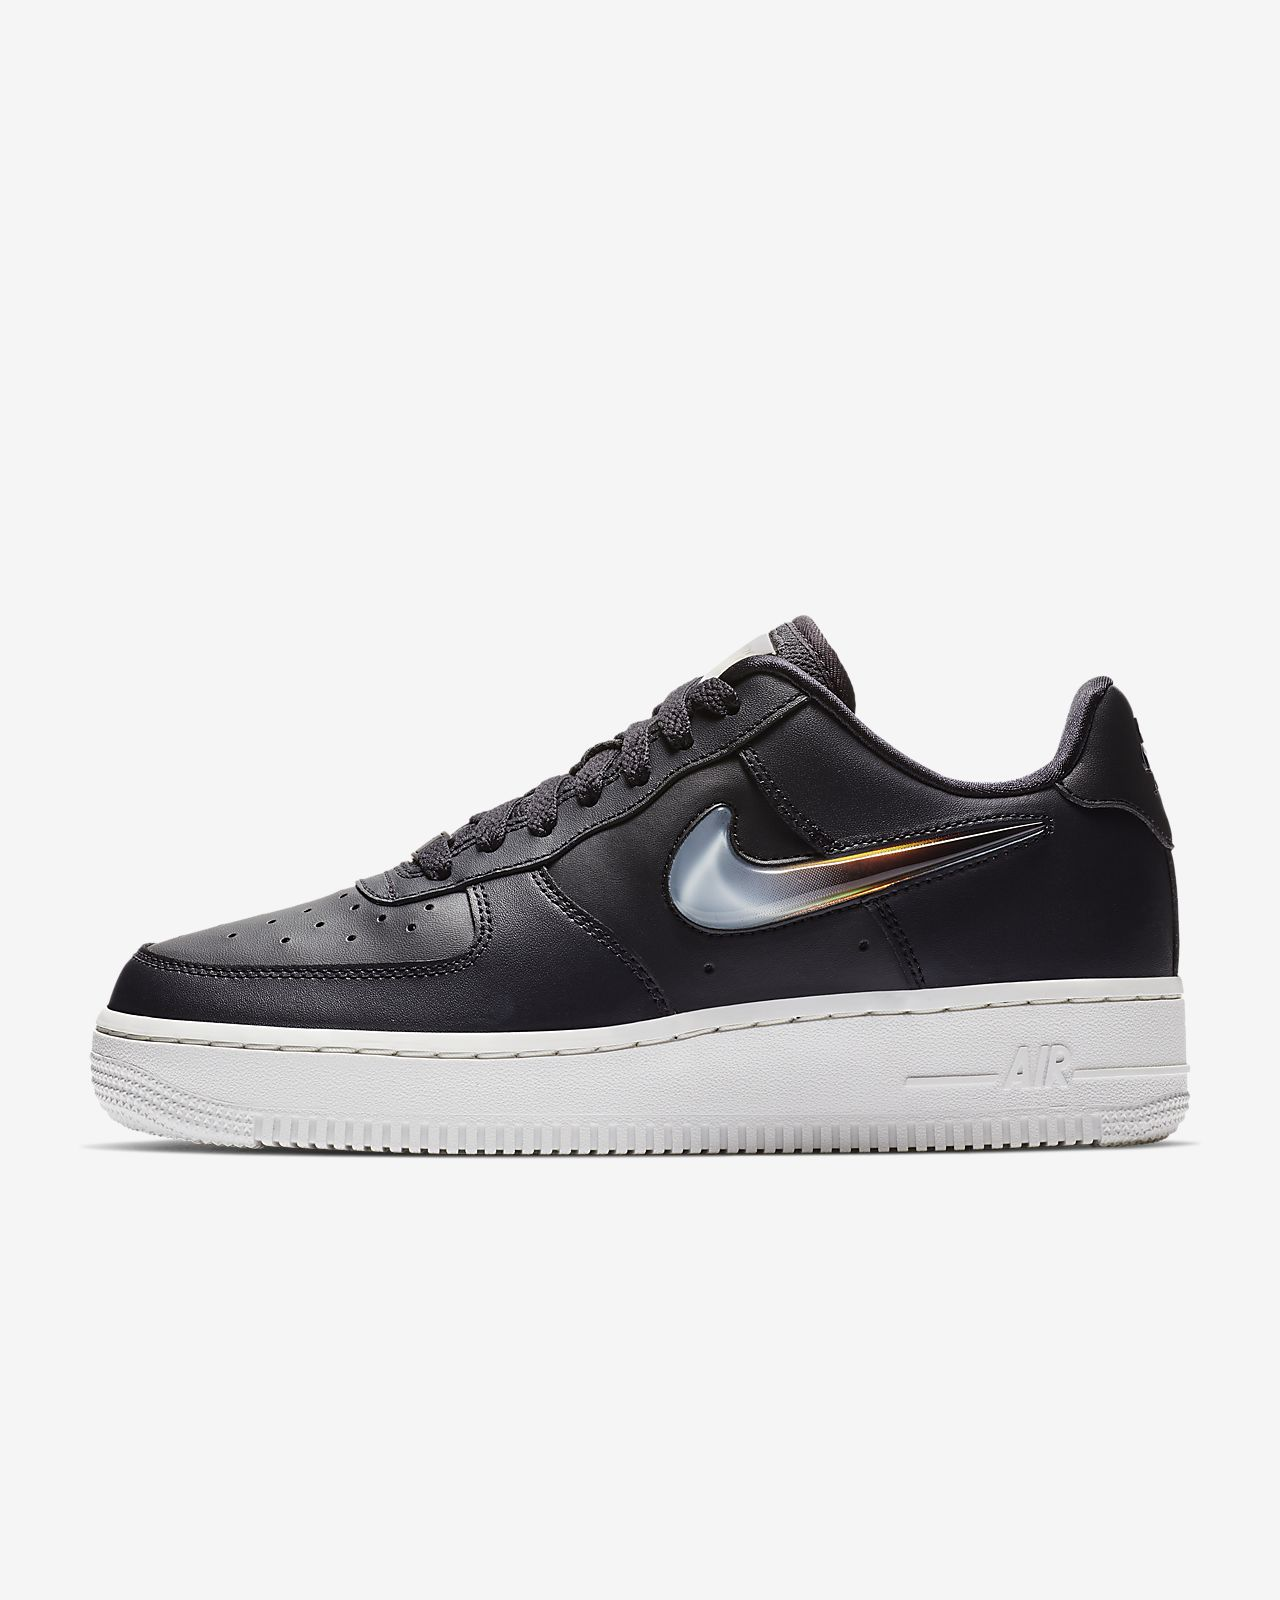 reputable site 6f56a 38314 Women s Shoe. Nike Air Force 1  07 SE Premium